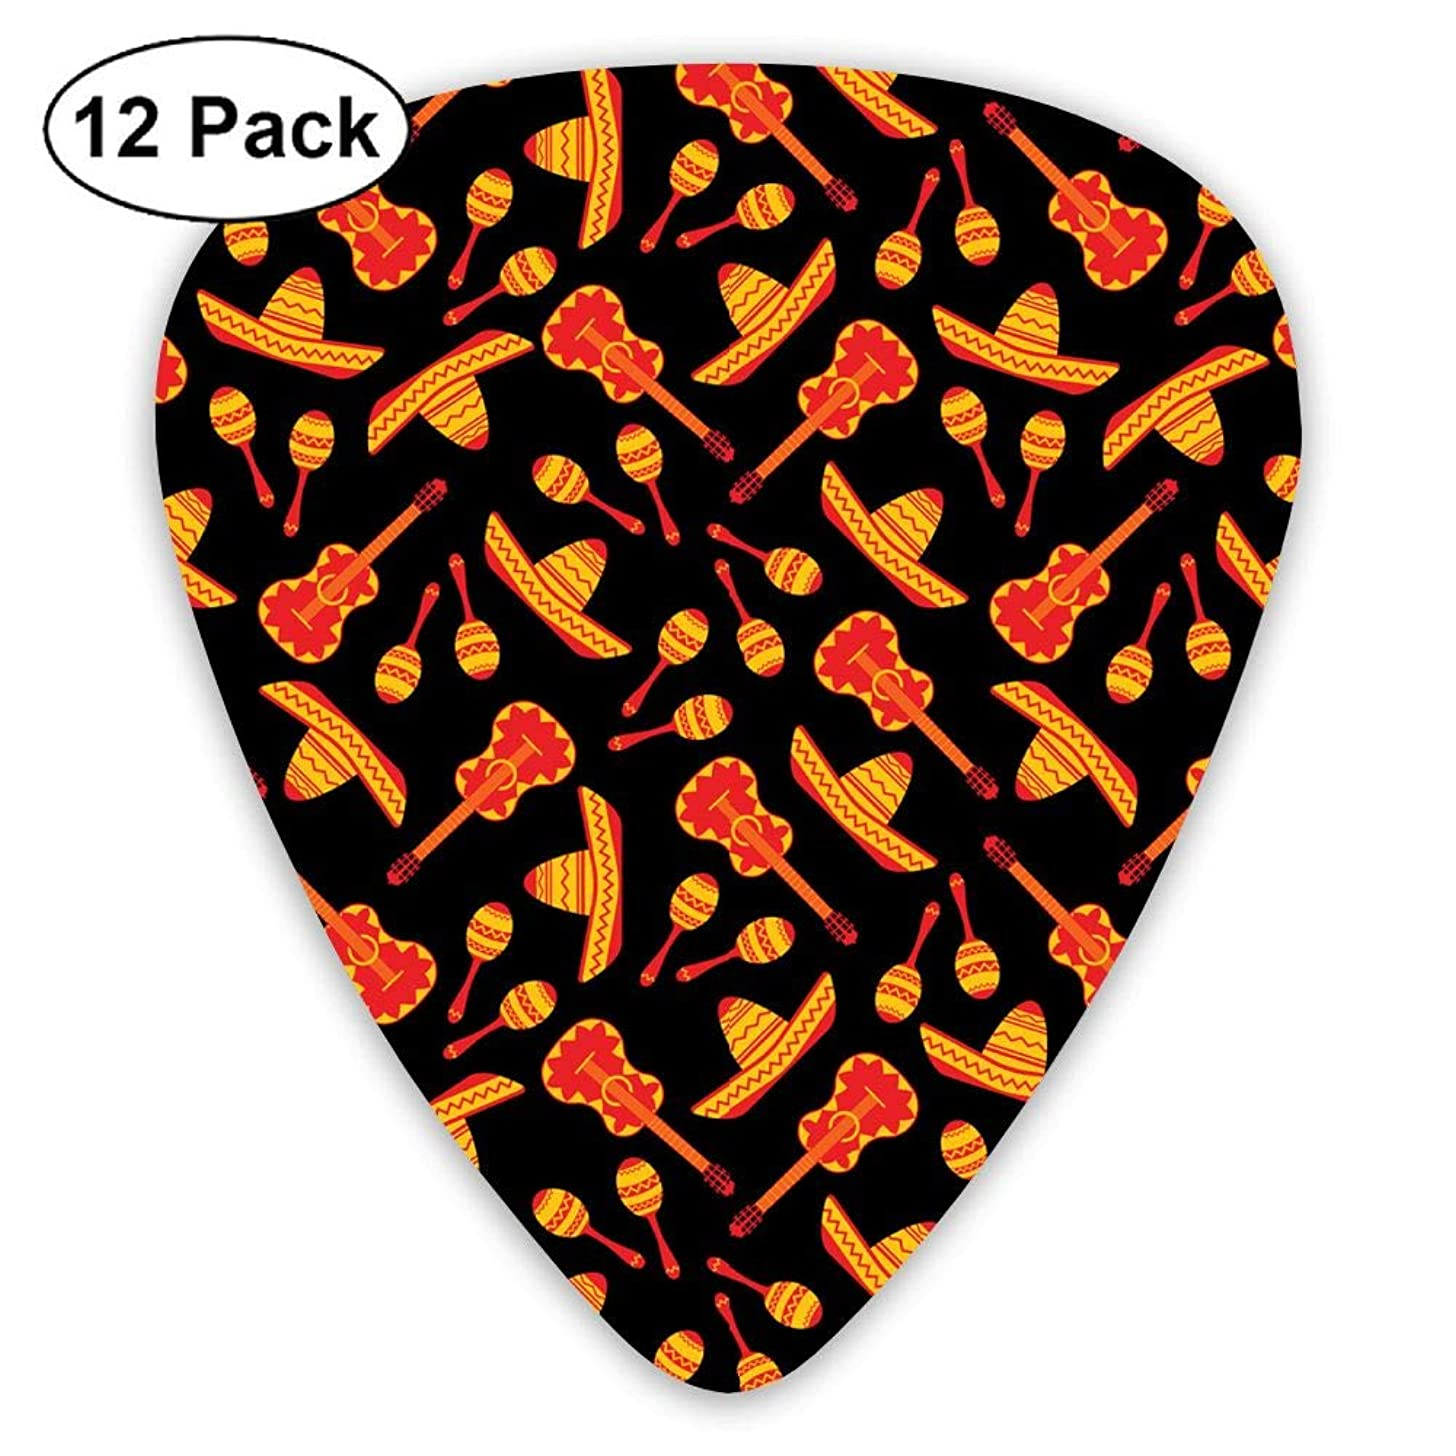 WOODRAIN Sombrero Guitar Maracas Pattern Guitar Picks 351 Shape Classic Picks 12-Pack Celluloid Paddles Plectrums 0.46mm/ 0.71mm/ 0.96mm